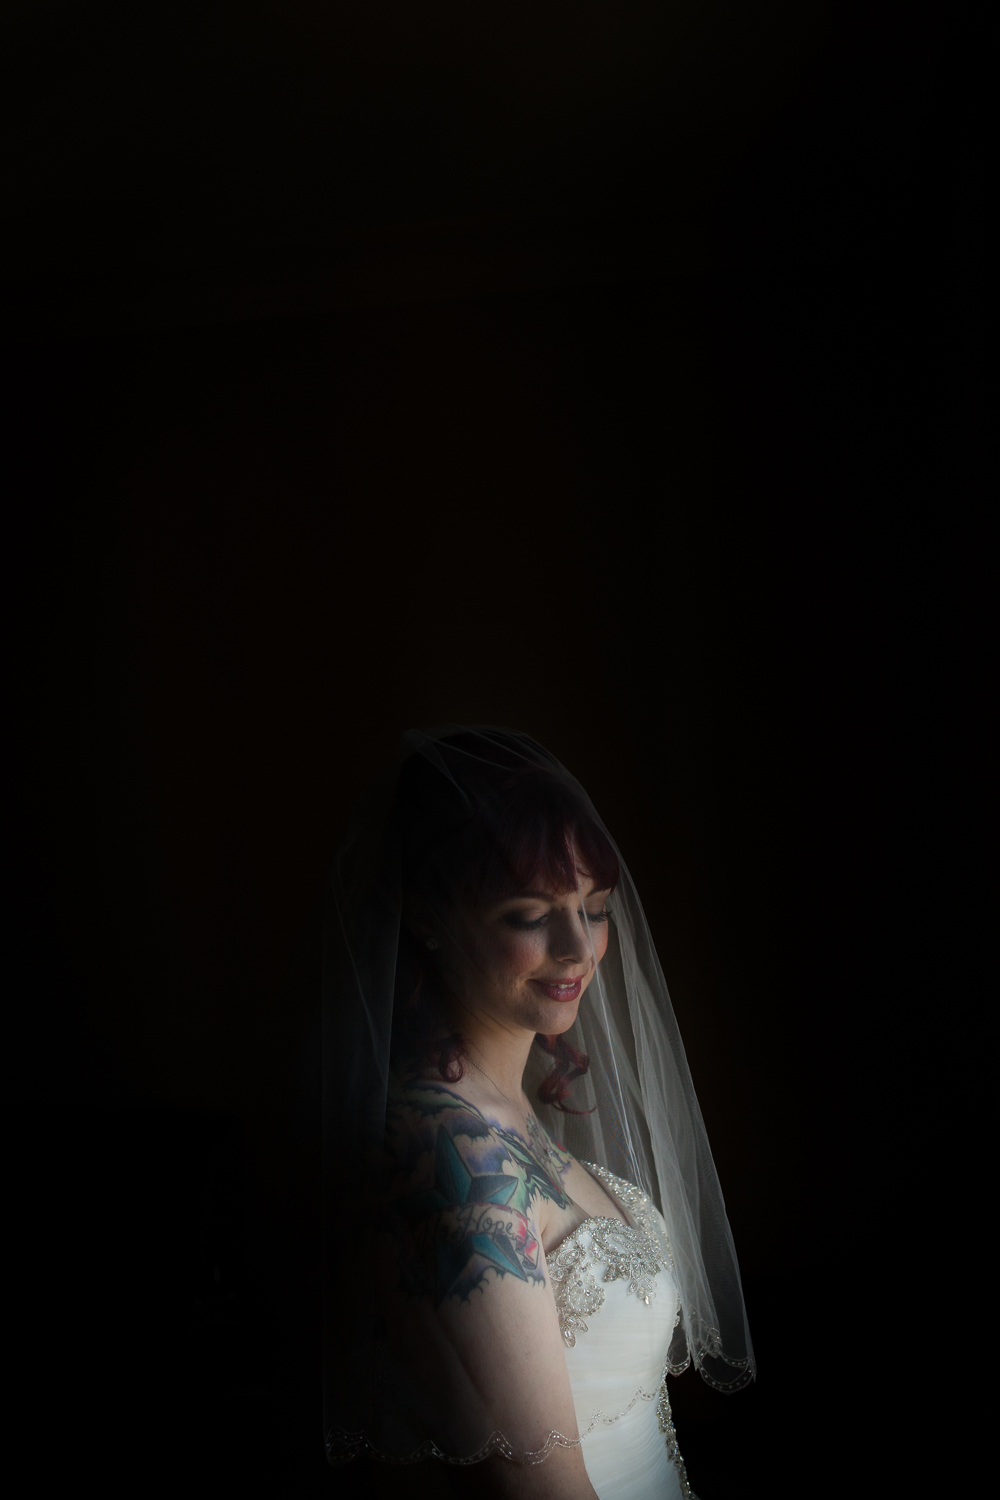 Bride-Portrait-Wedding-Photography-22.jpg